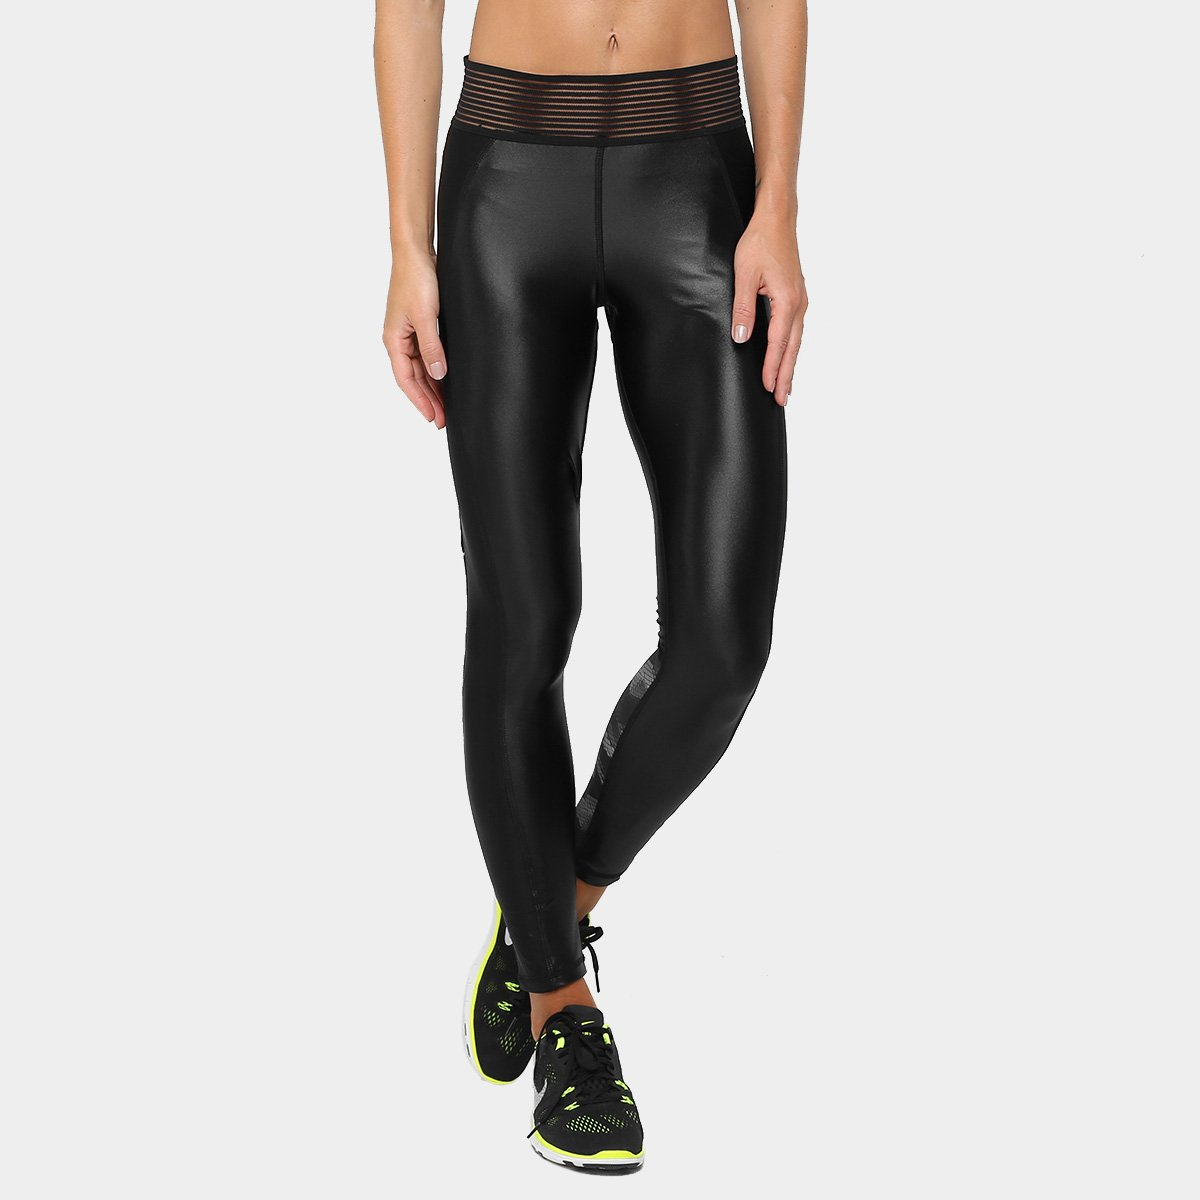 Calça Preto Legging We Calça Chumbo Legging Feminina Fit Active e 0S1dE